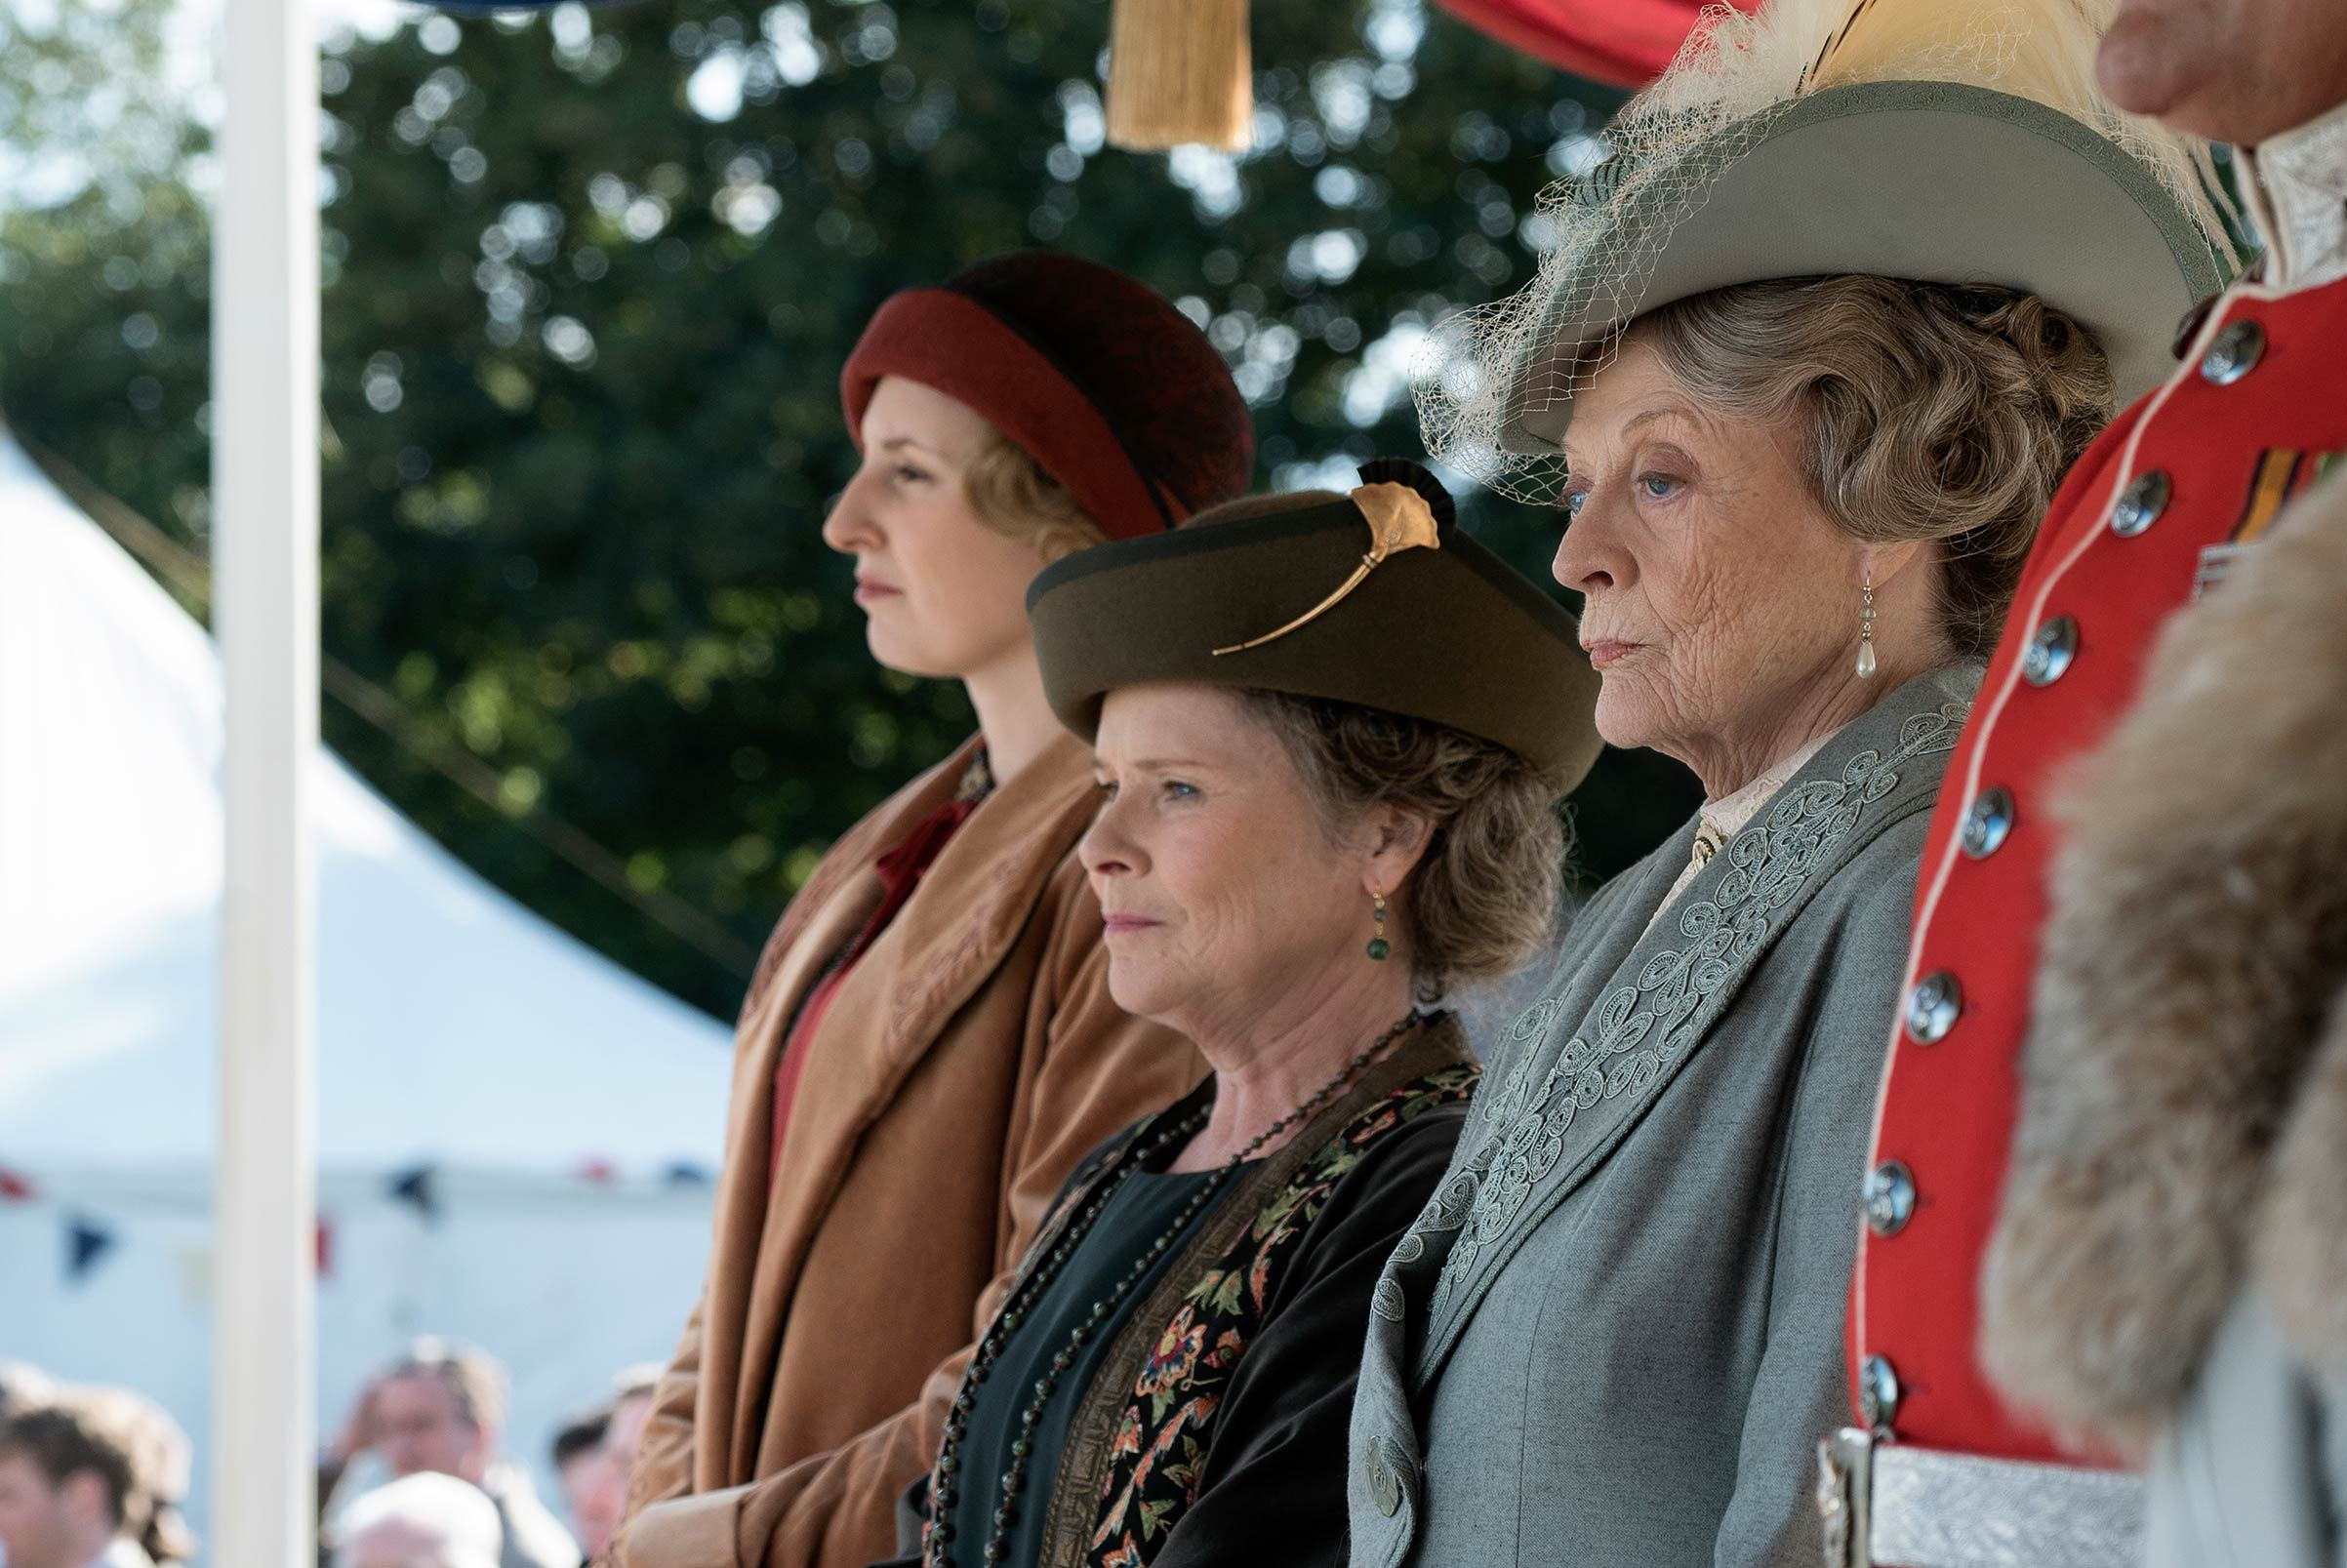 'Downton Abbey' extends its six-season narrative with a feature film set around a royal visit.